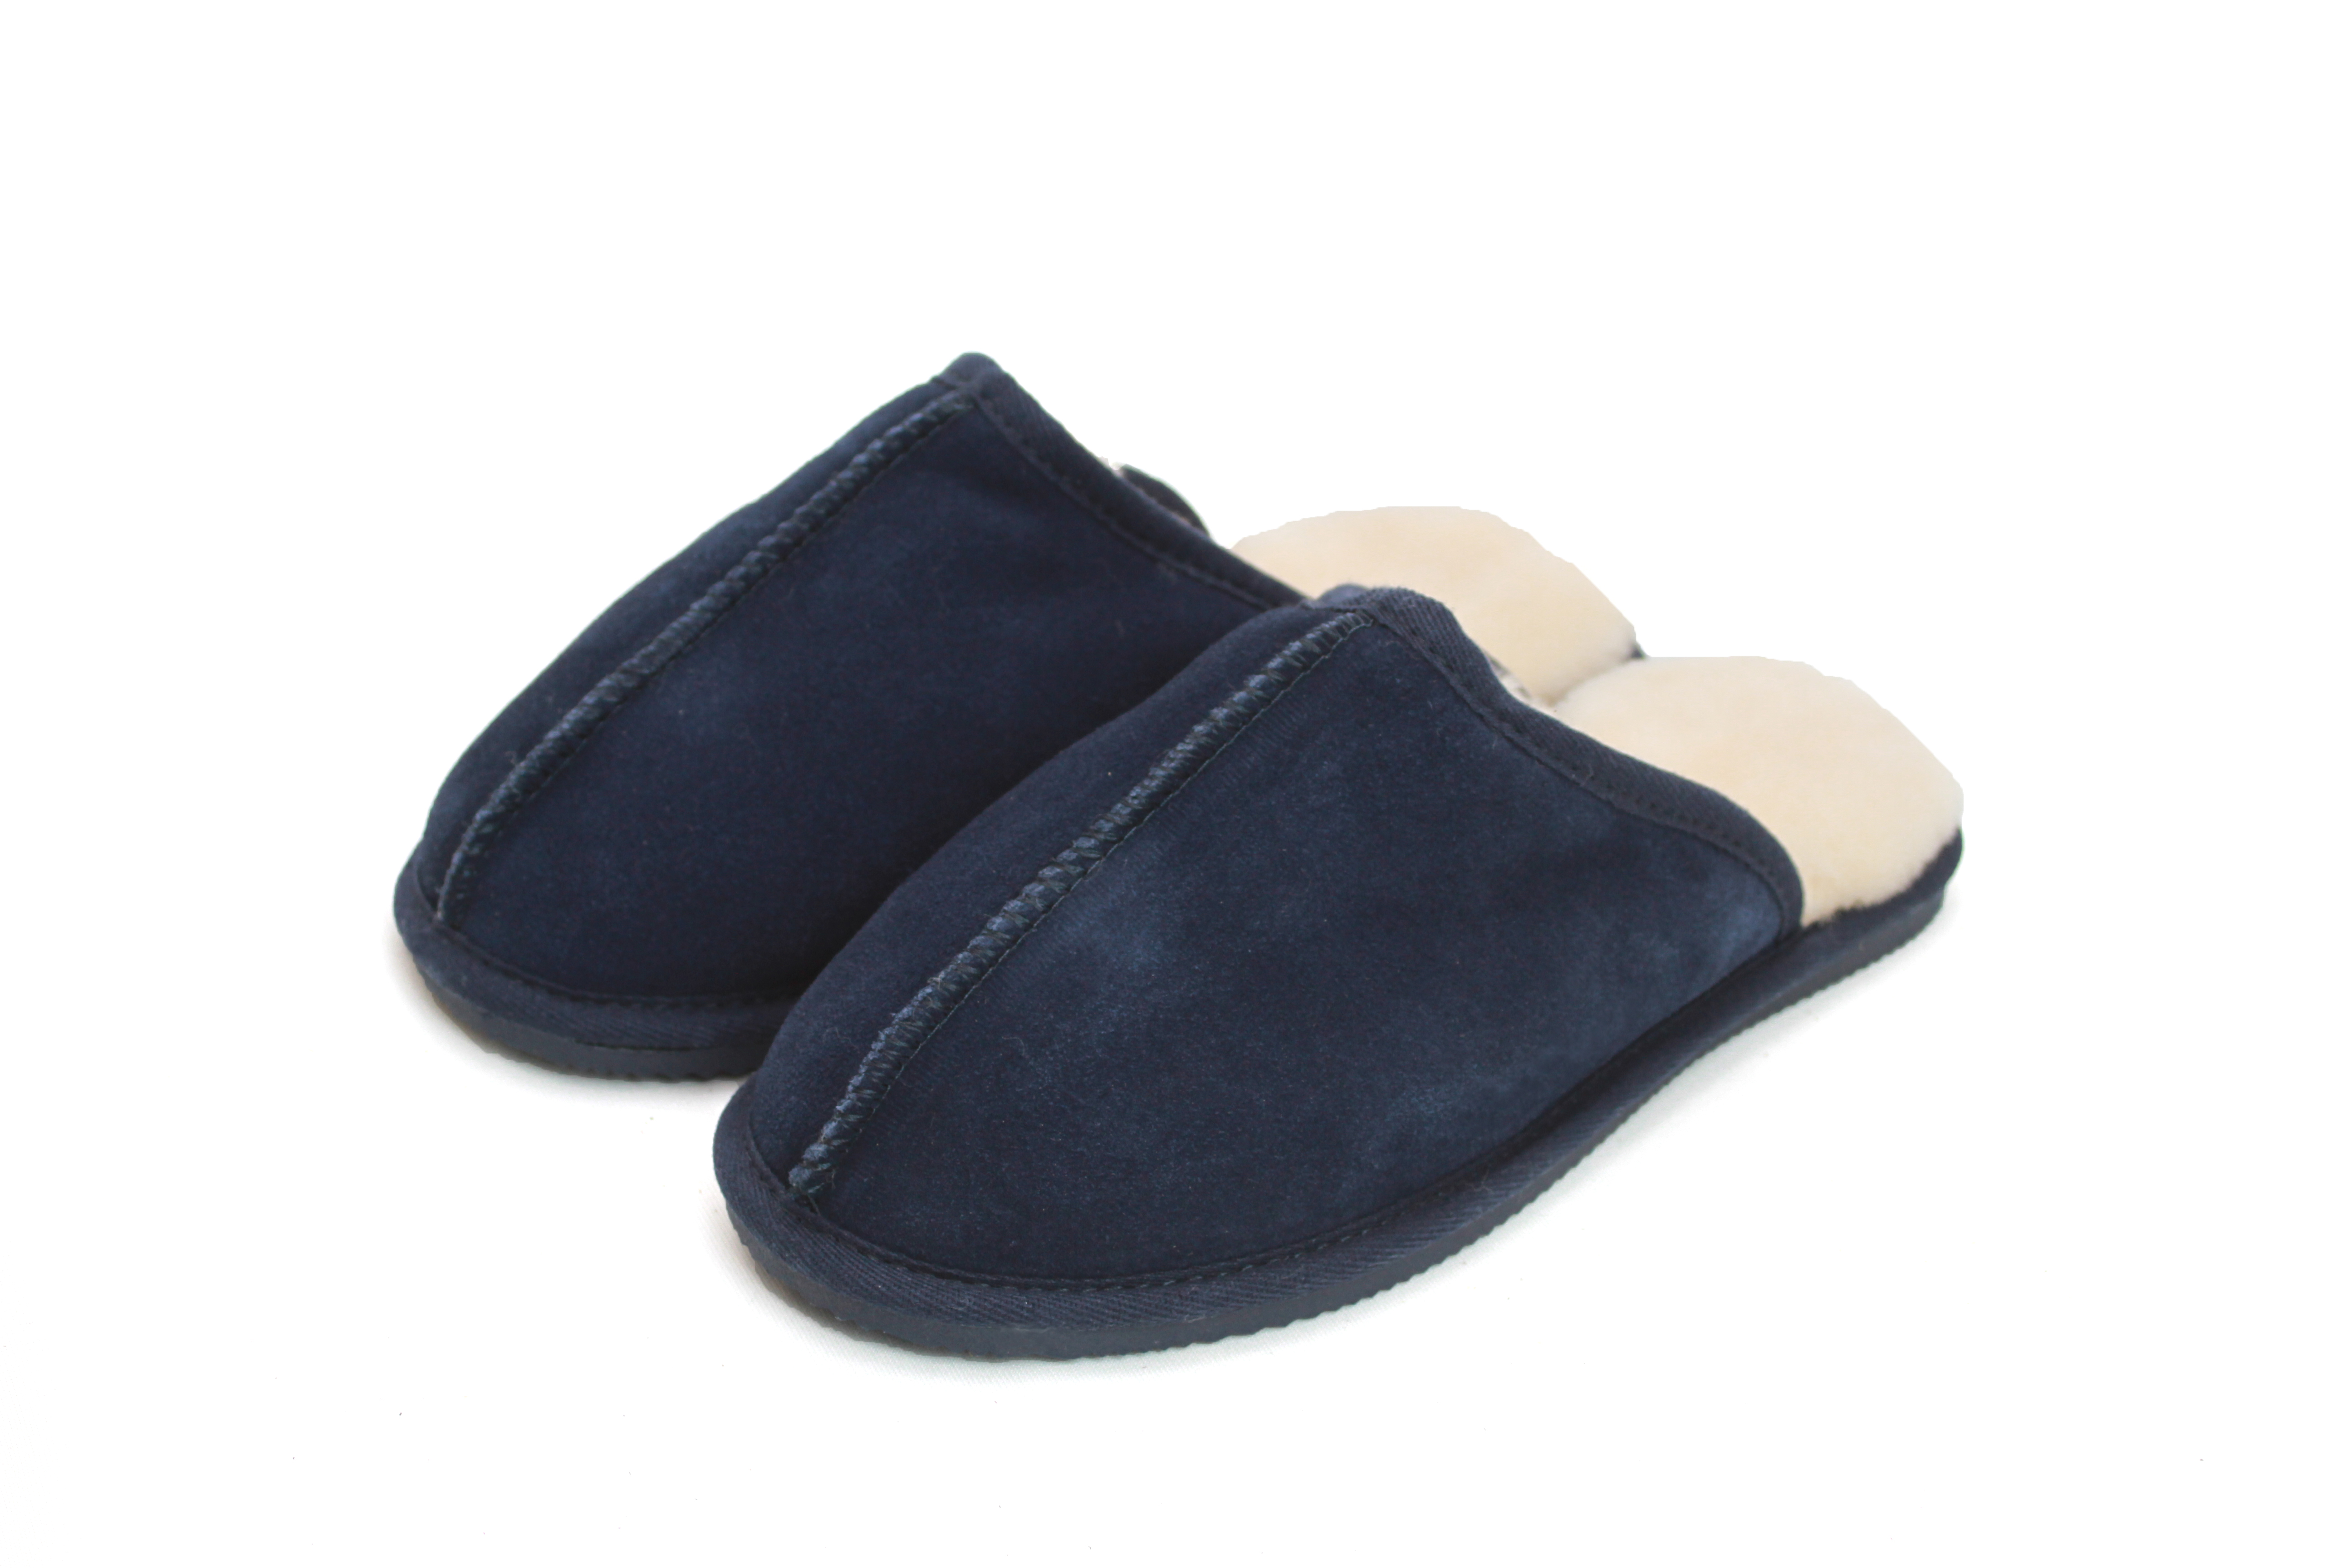 Sheepskin Mule Slipper – ECM001/SV